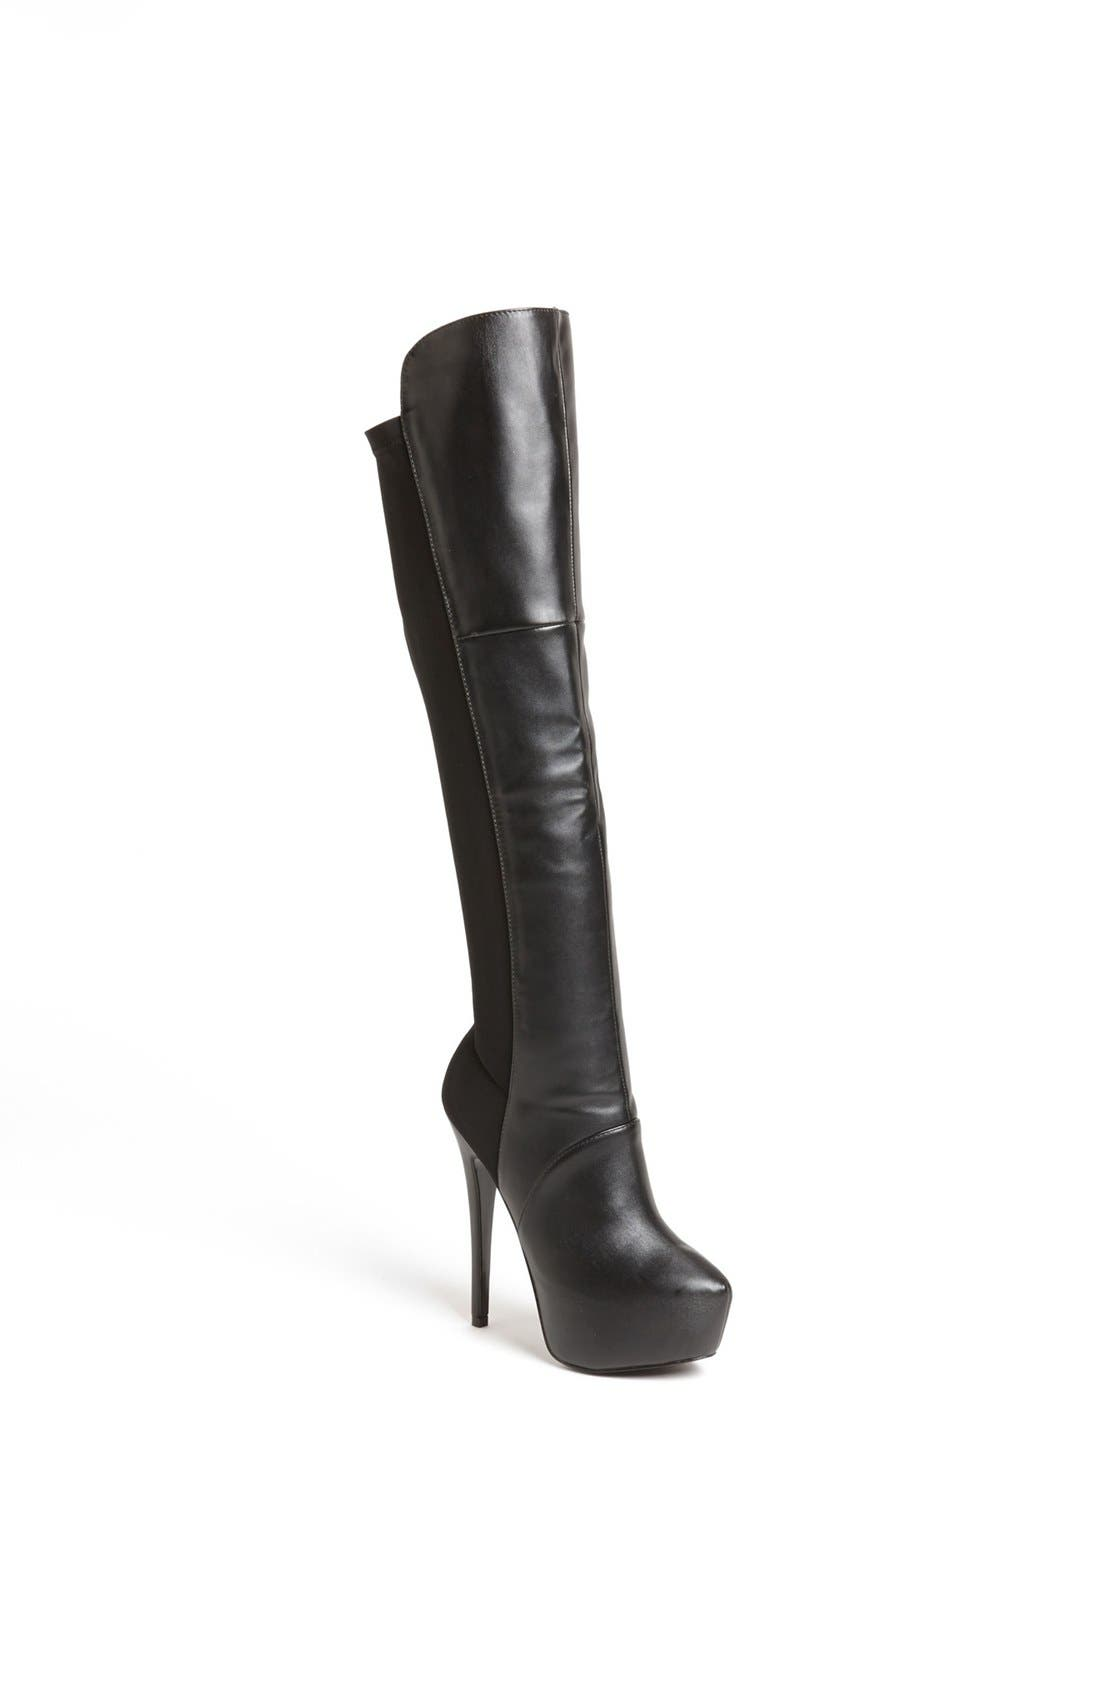 Alternate Image 1 Selected - Steve Madden 'Highting' Over the Knee Pointy Toe Stretch Boot